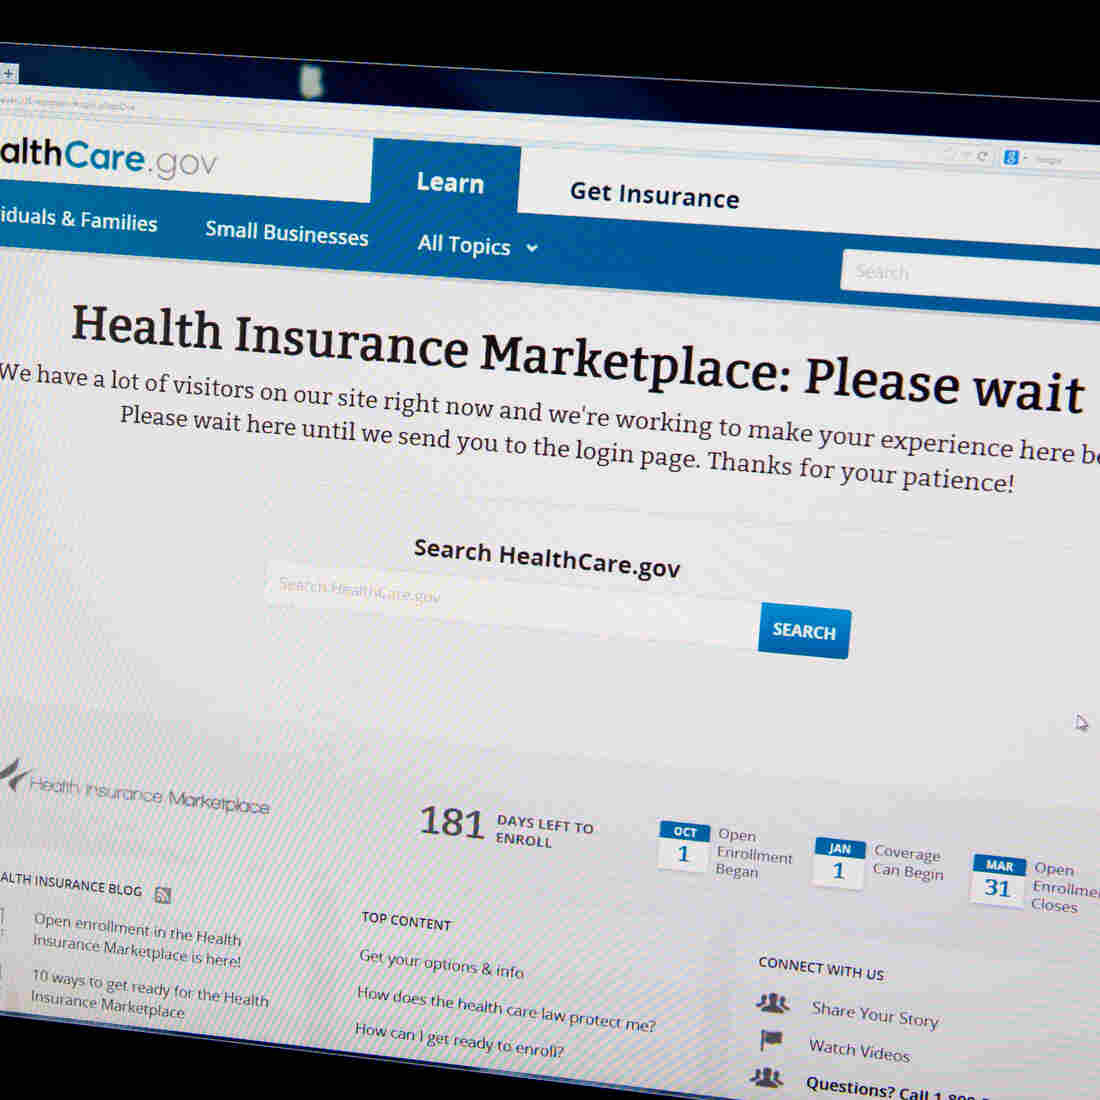 """We can do better,"" says White House spokesman Jay Carney, of healthcare.gov's ongoing software problems and delays."